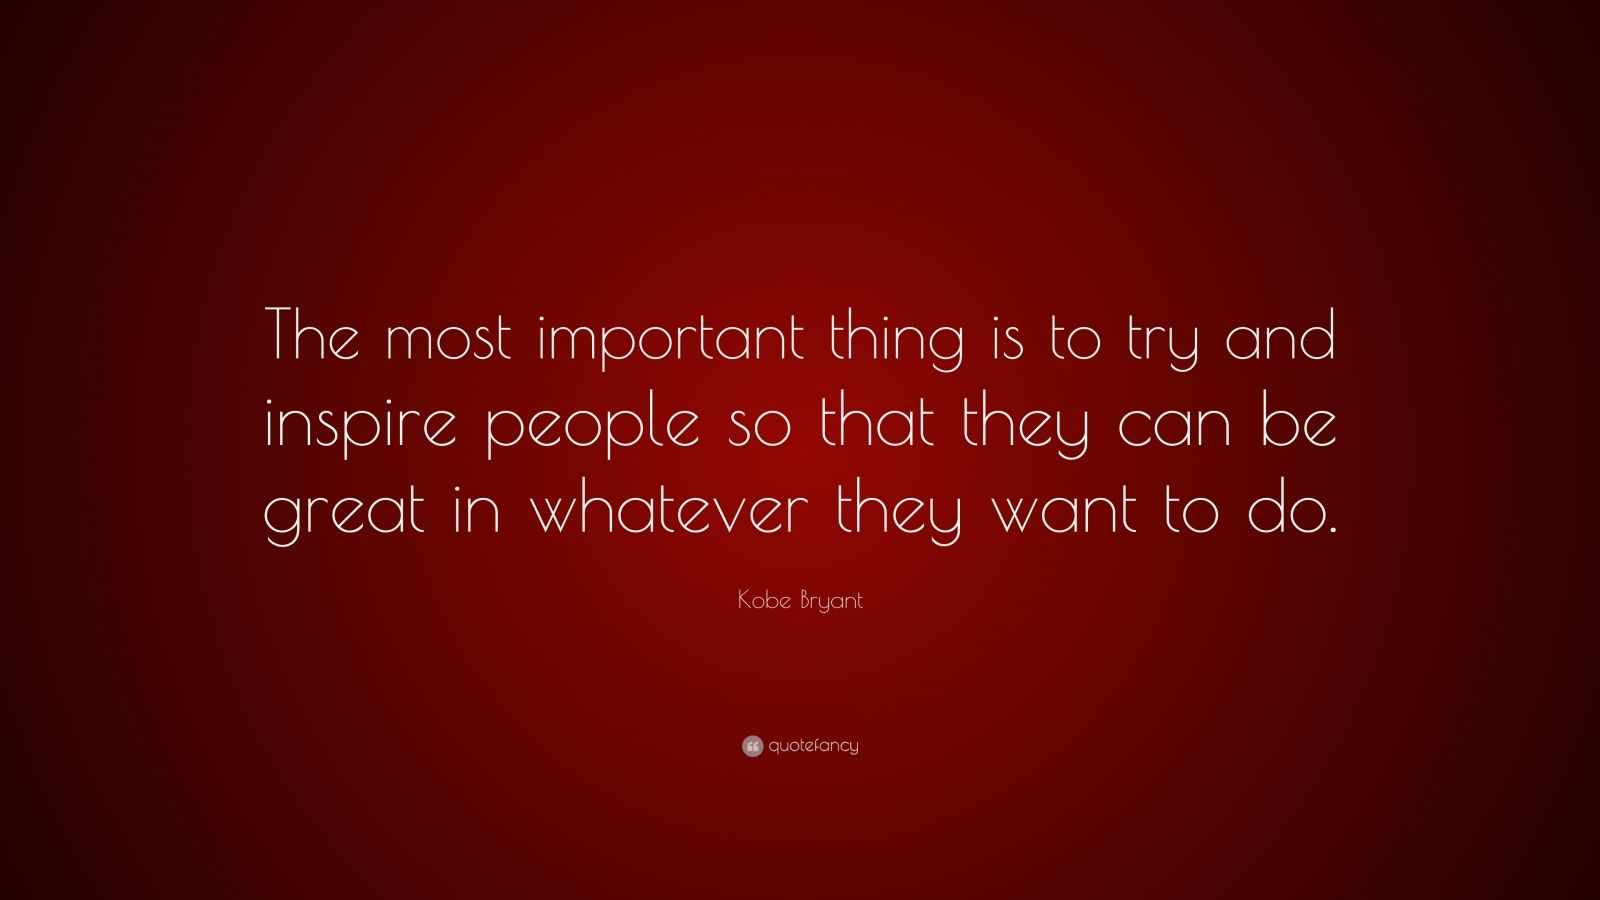 """Kobe Bryant Quote: """"The most important thing is to try and inspire people so that they can be great in whatever they want to do."""""""